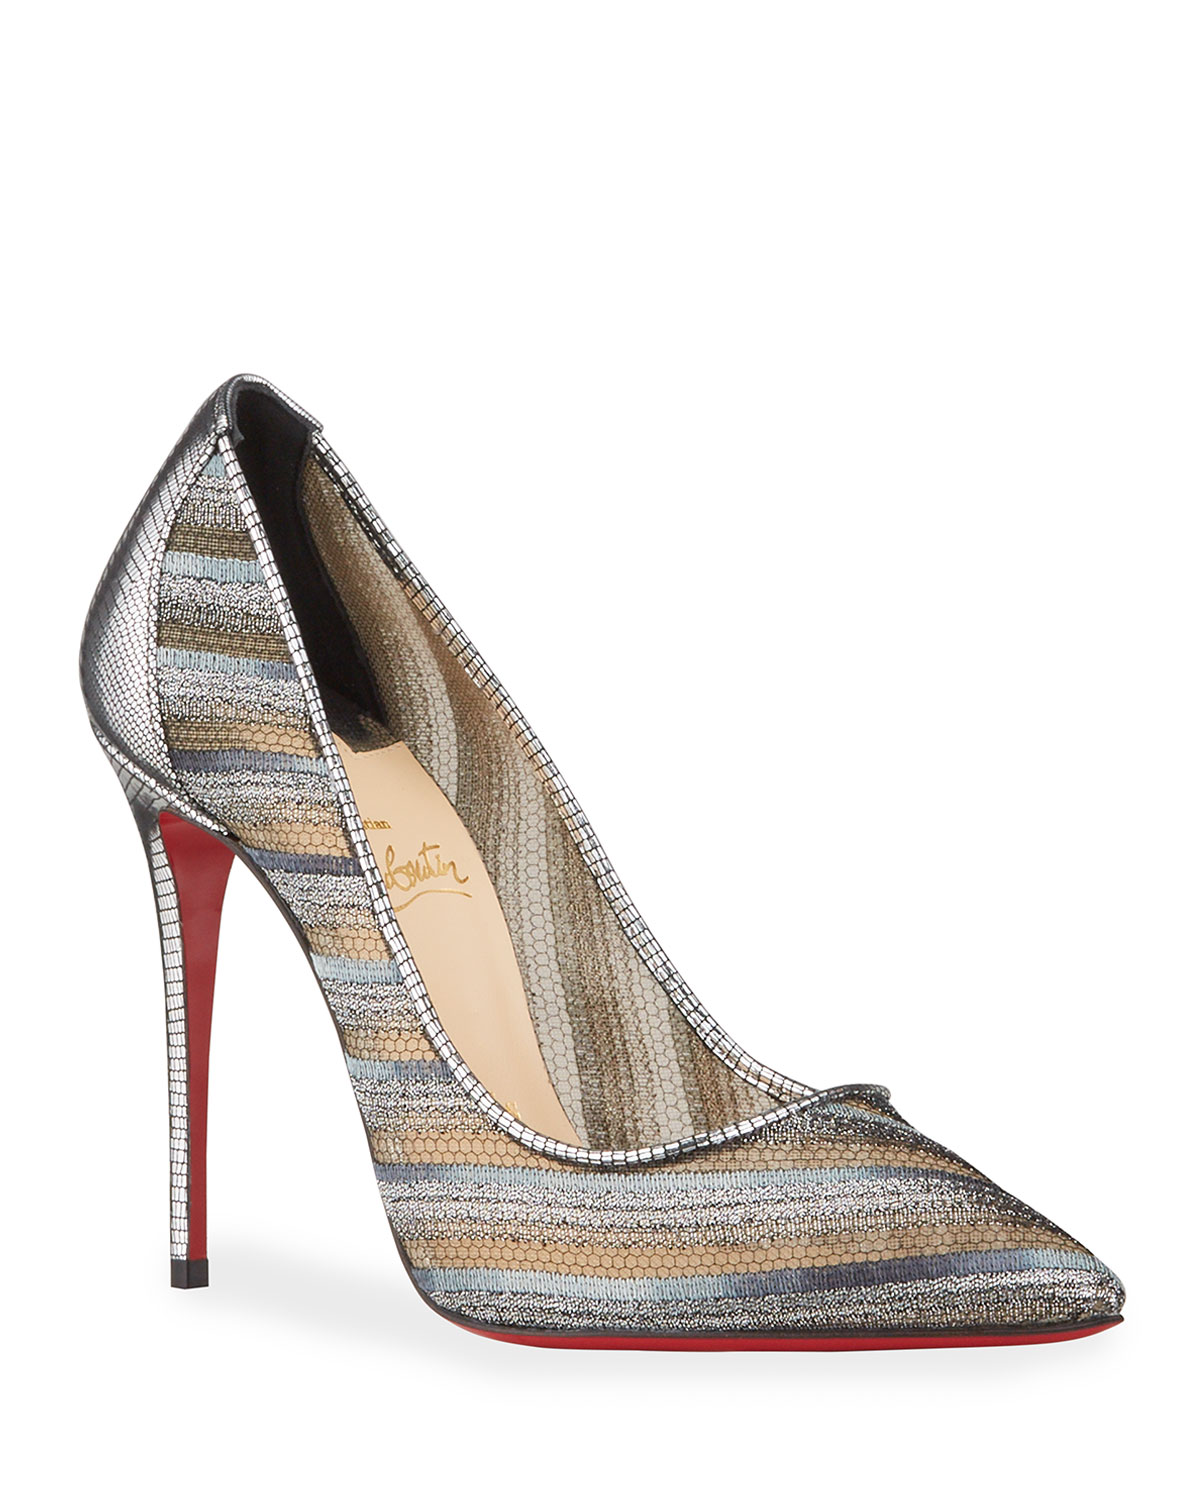 Christian Louboutin FOLLIES METALLIC RED SOLE PUMPS